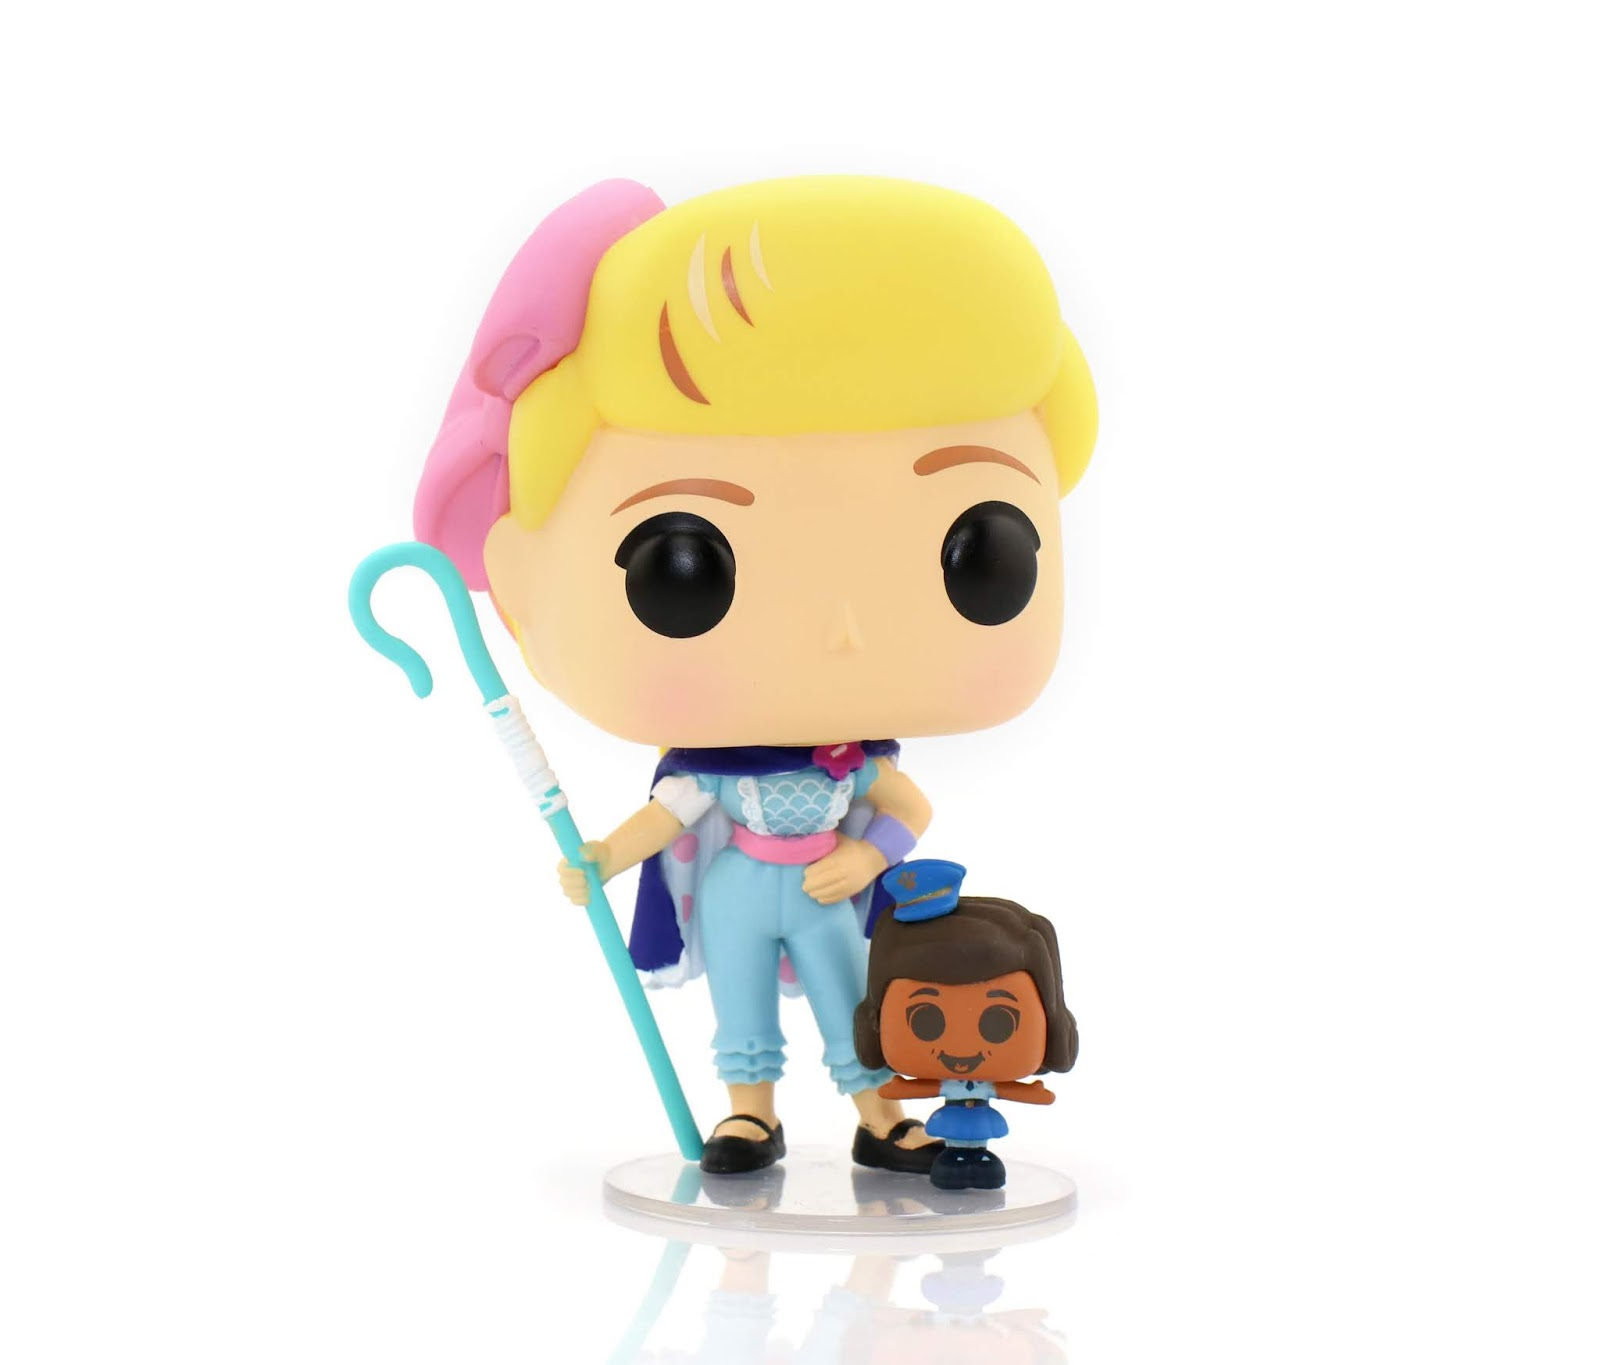 toy story 4 funko pop collection bo peep with giggle